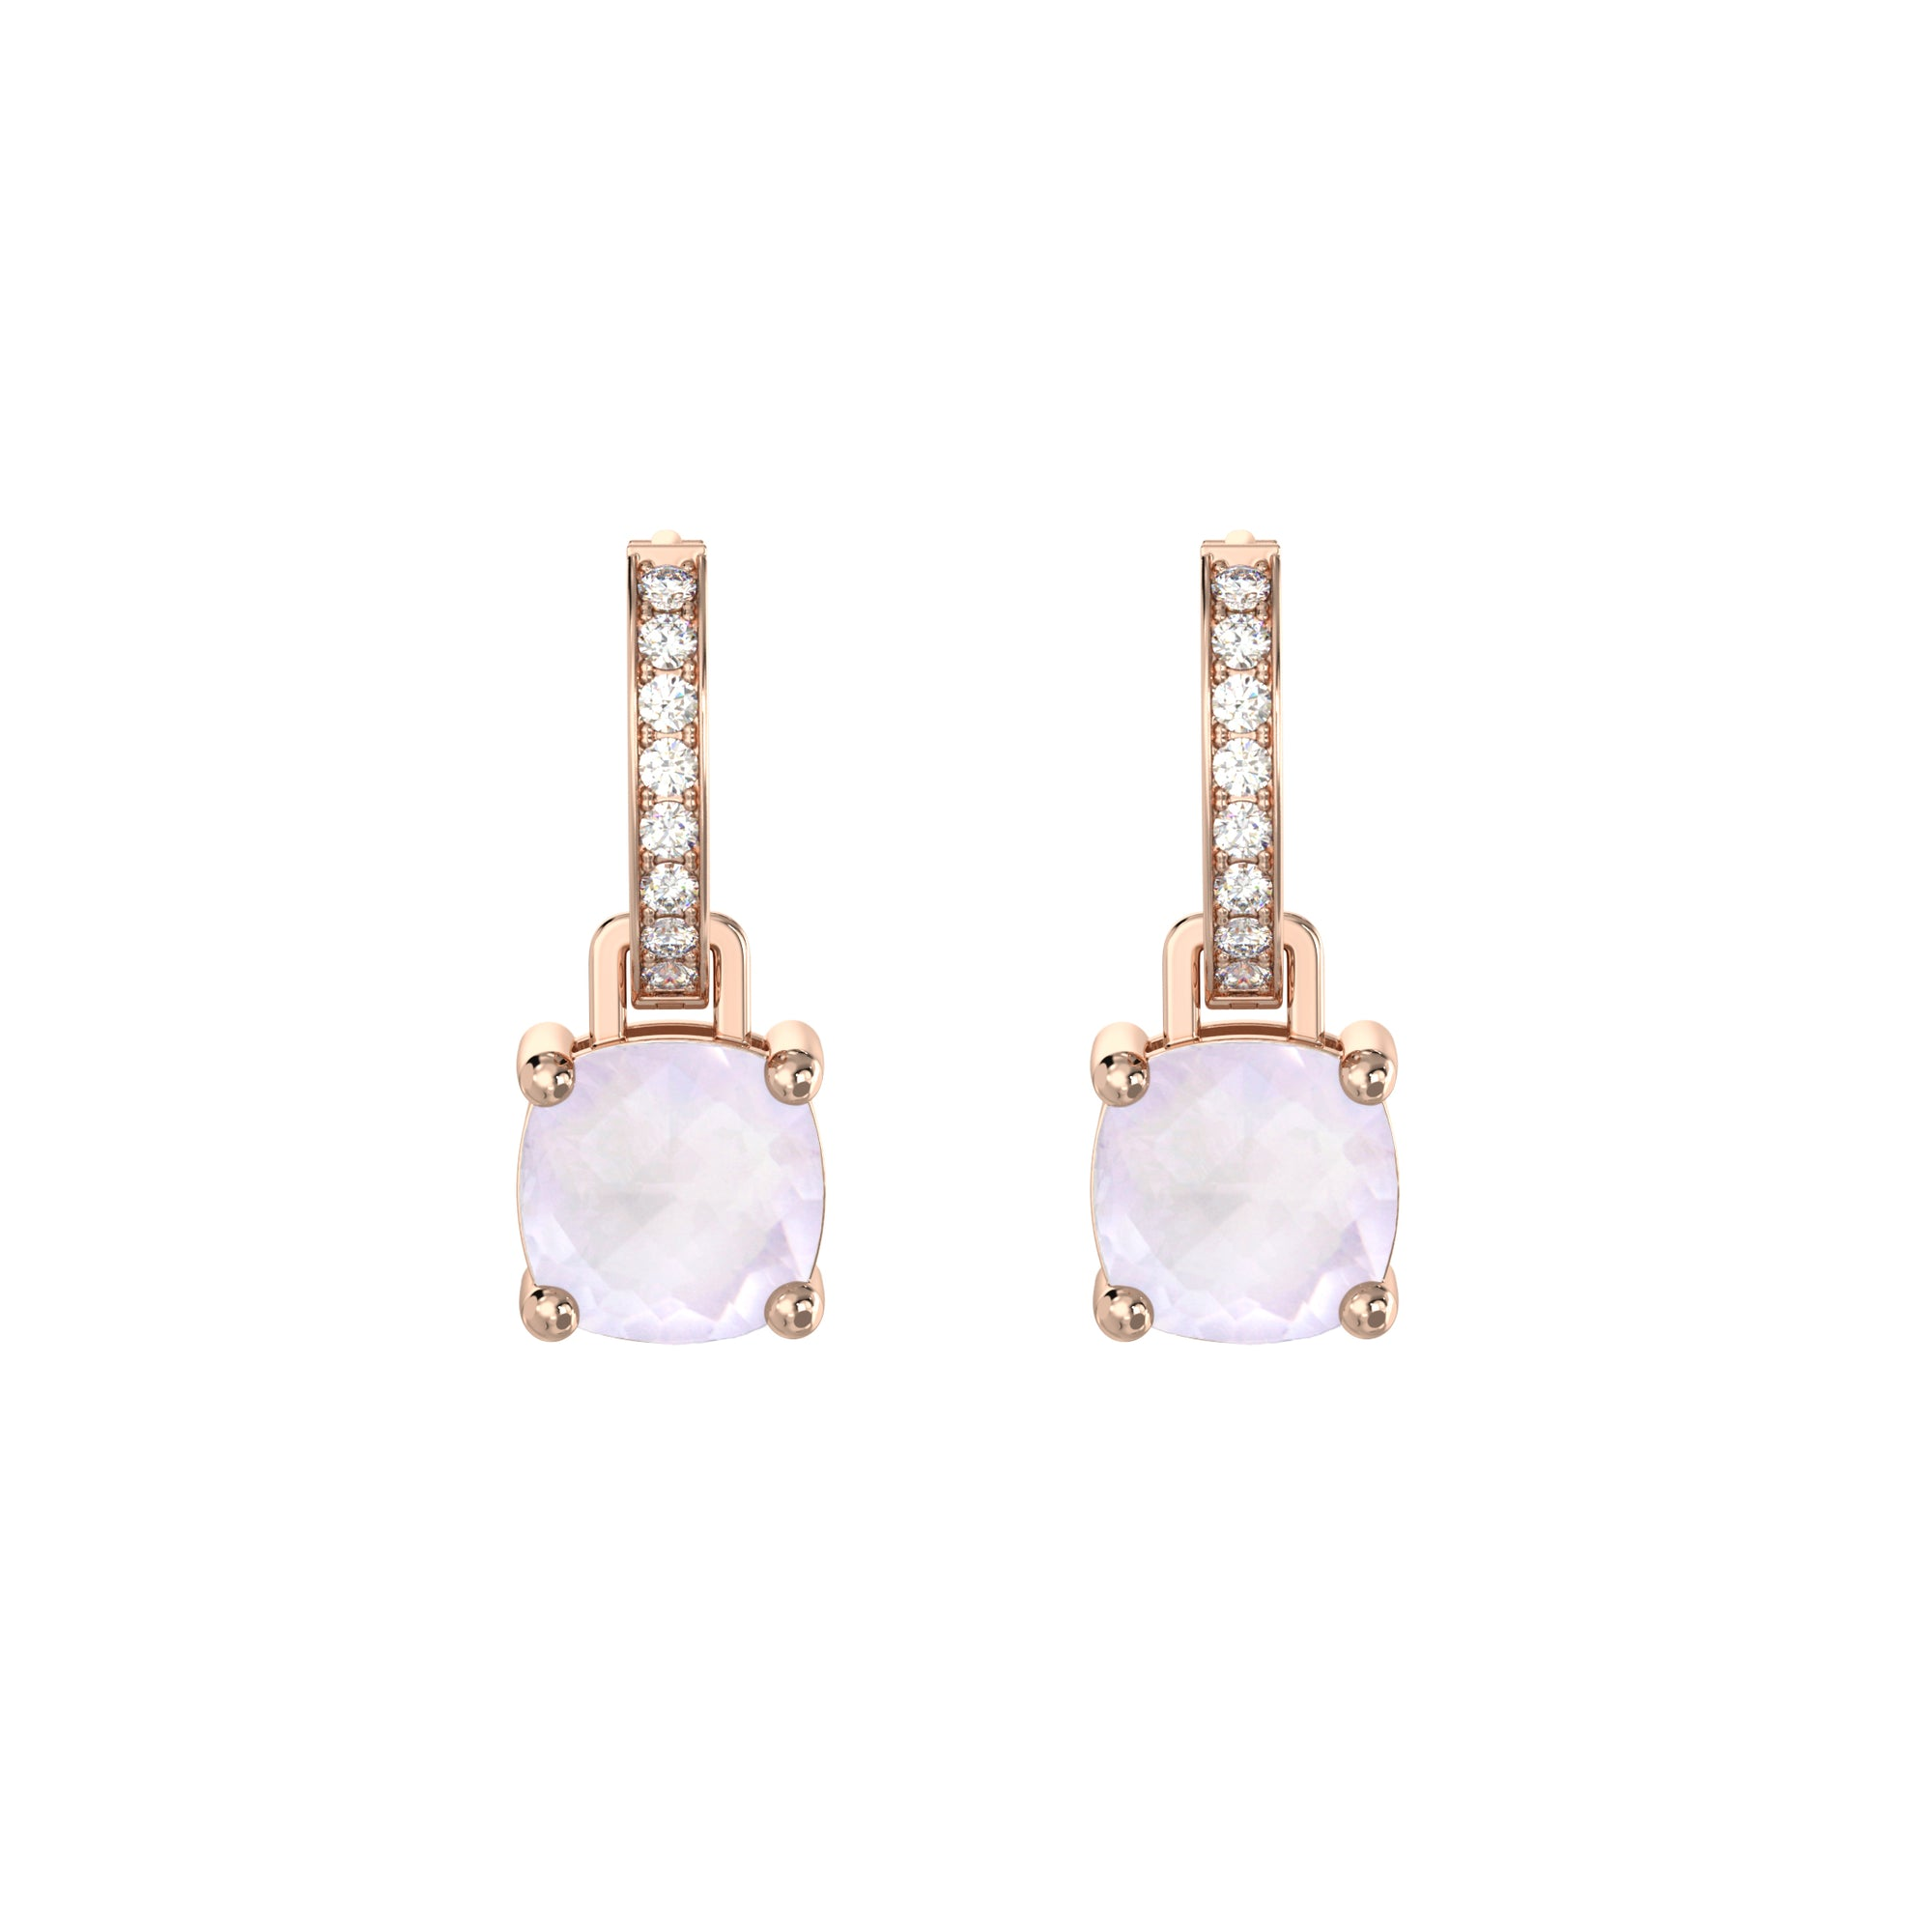 925 Silver Luxe Series Earrings Charms - Wylie (Rose Quartz) - Rose Gold Plated